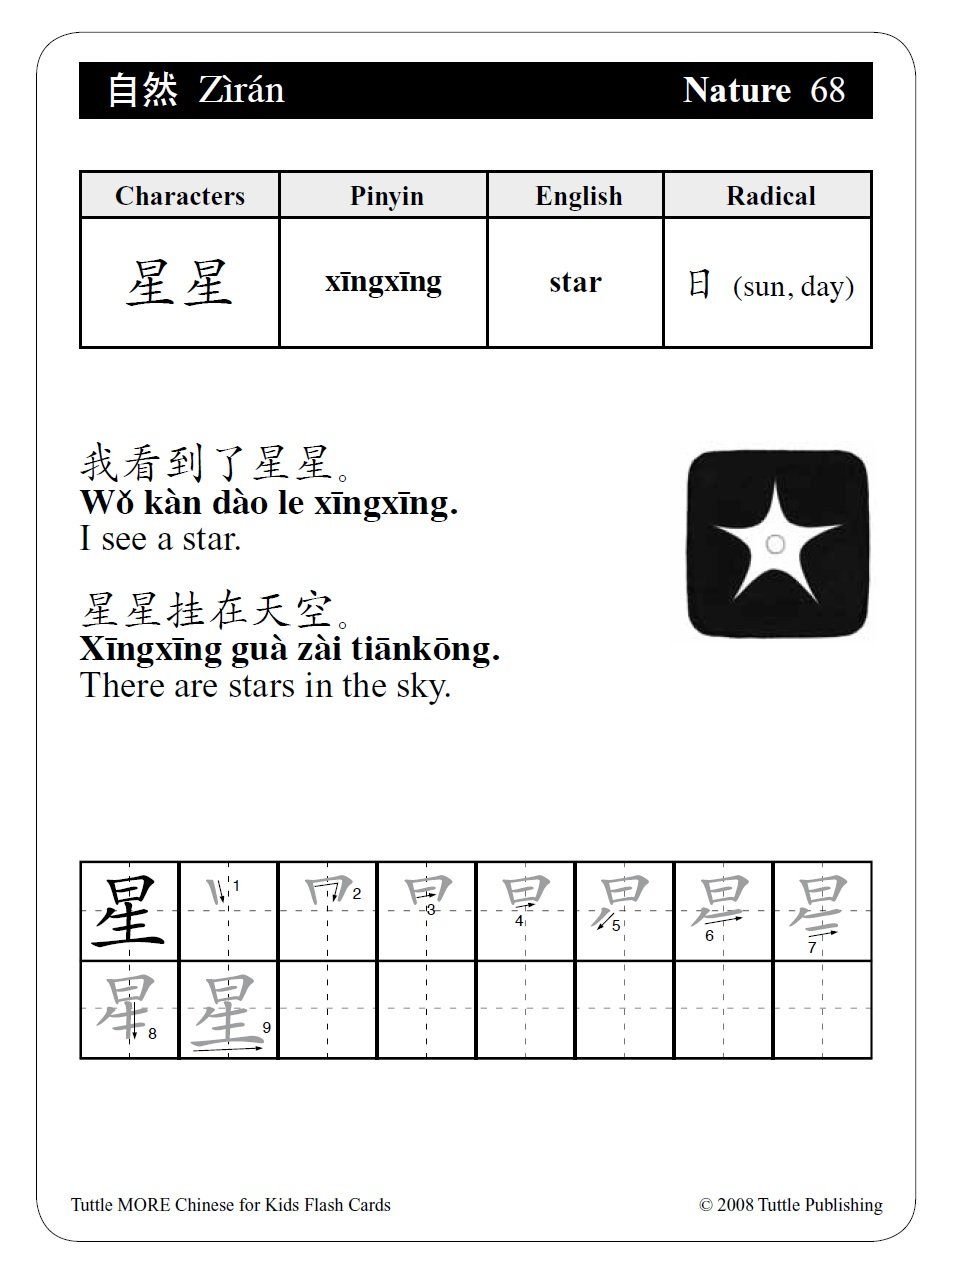 Tuttle more chinese for kids flash cards simplified edition tuttle more chinese for kids flash cards simplified edition includes 64 flash cards audio cd wall chart learning guide tuttle flash cards tuttle buycottarizona